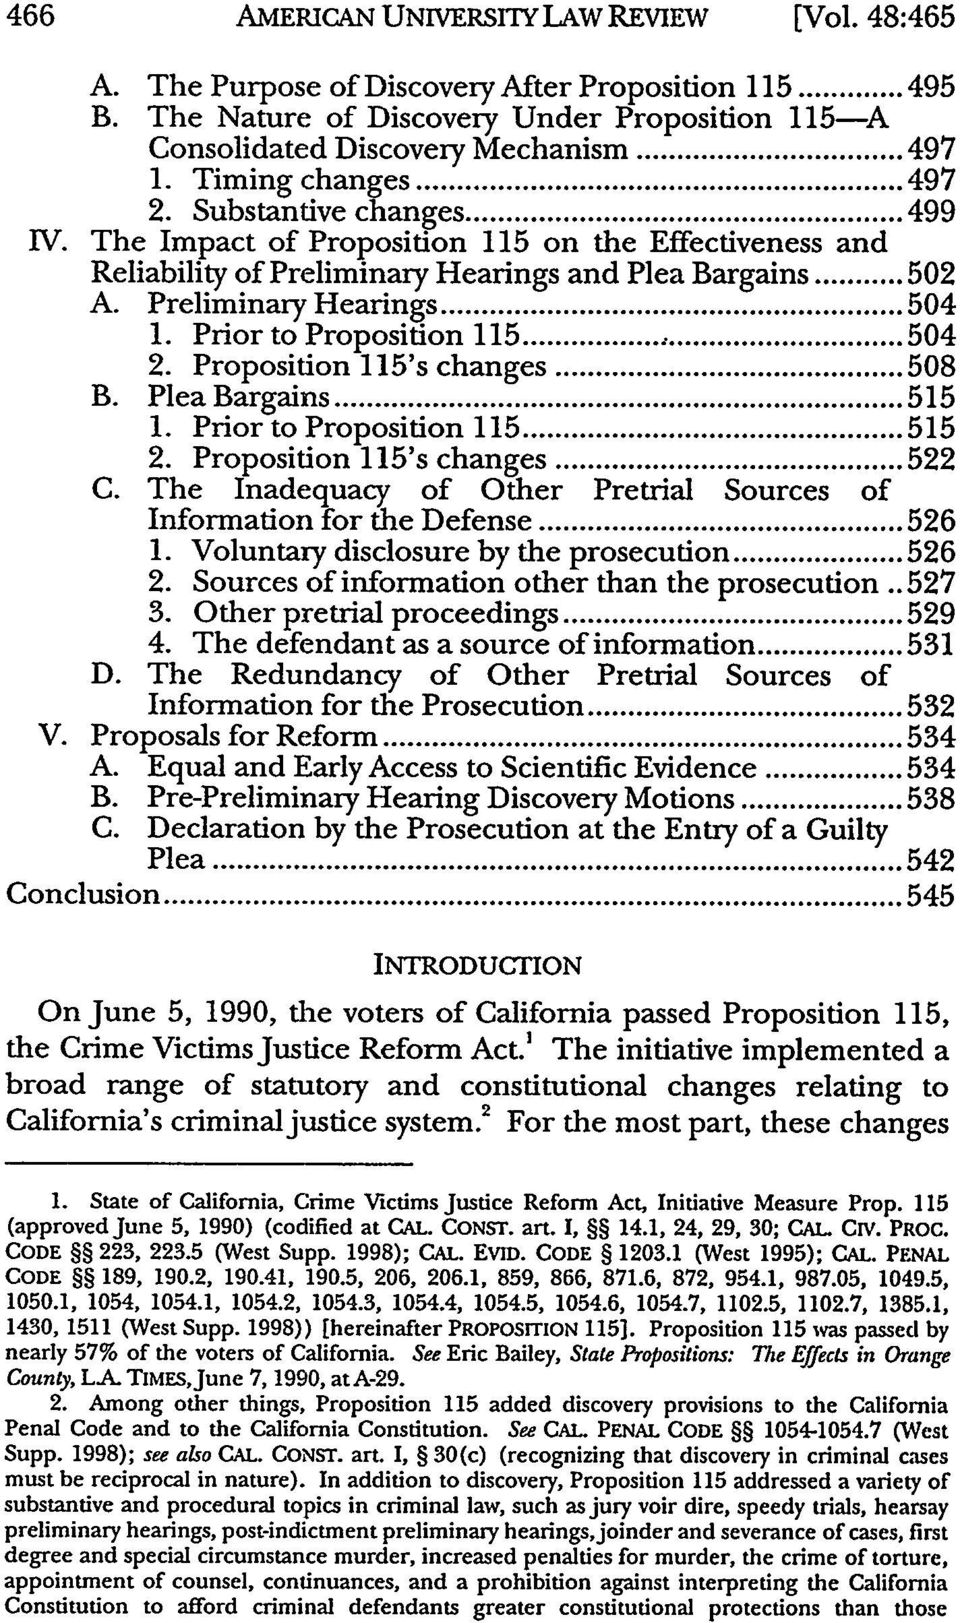 Prior to Proposition 115... 504 B. 2. Proposition 115's changes... 508 Plea Bargains... 515 1. Prior to Proposition 115... 515 C. 2. Proposition 115's changes... 522 The Inadequacy of Other Pretrial Sources of Information for the Defense.